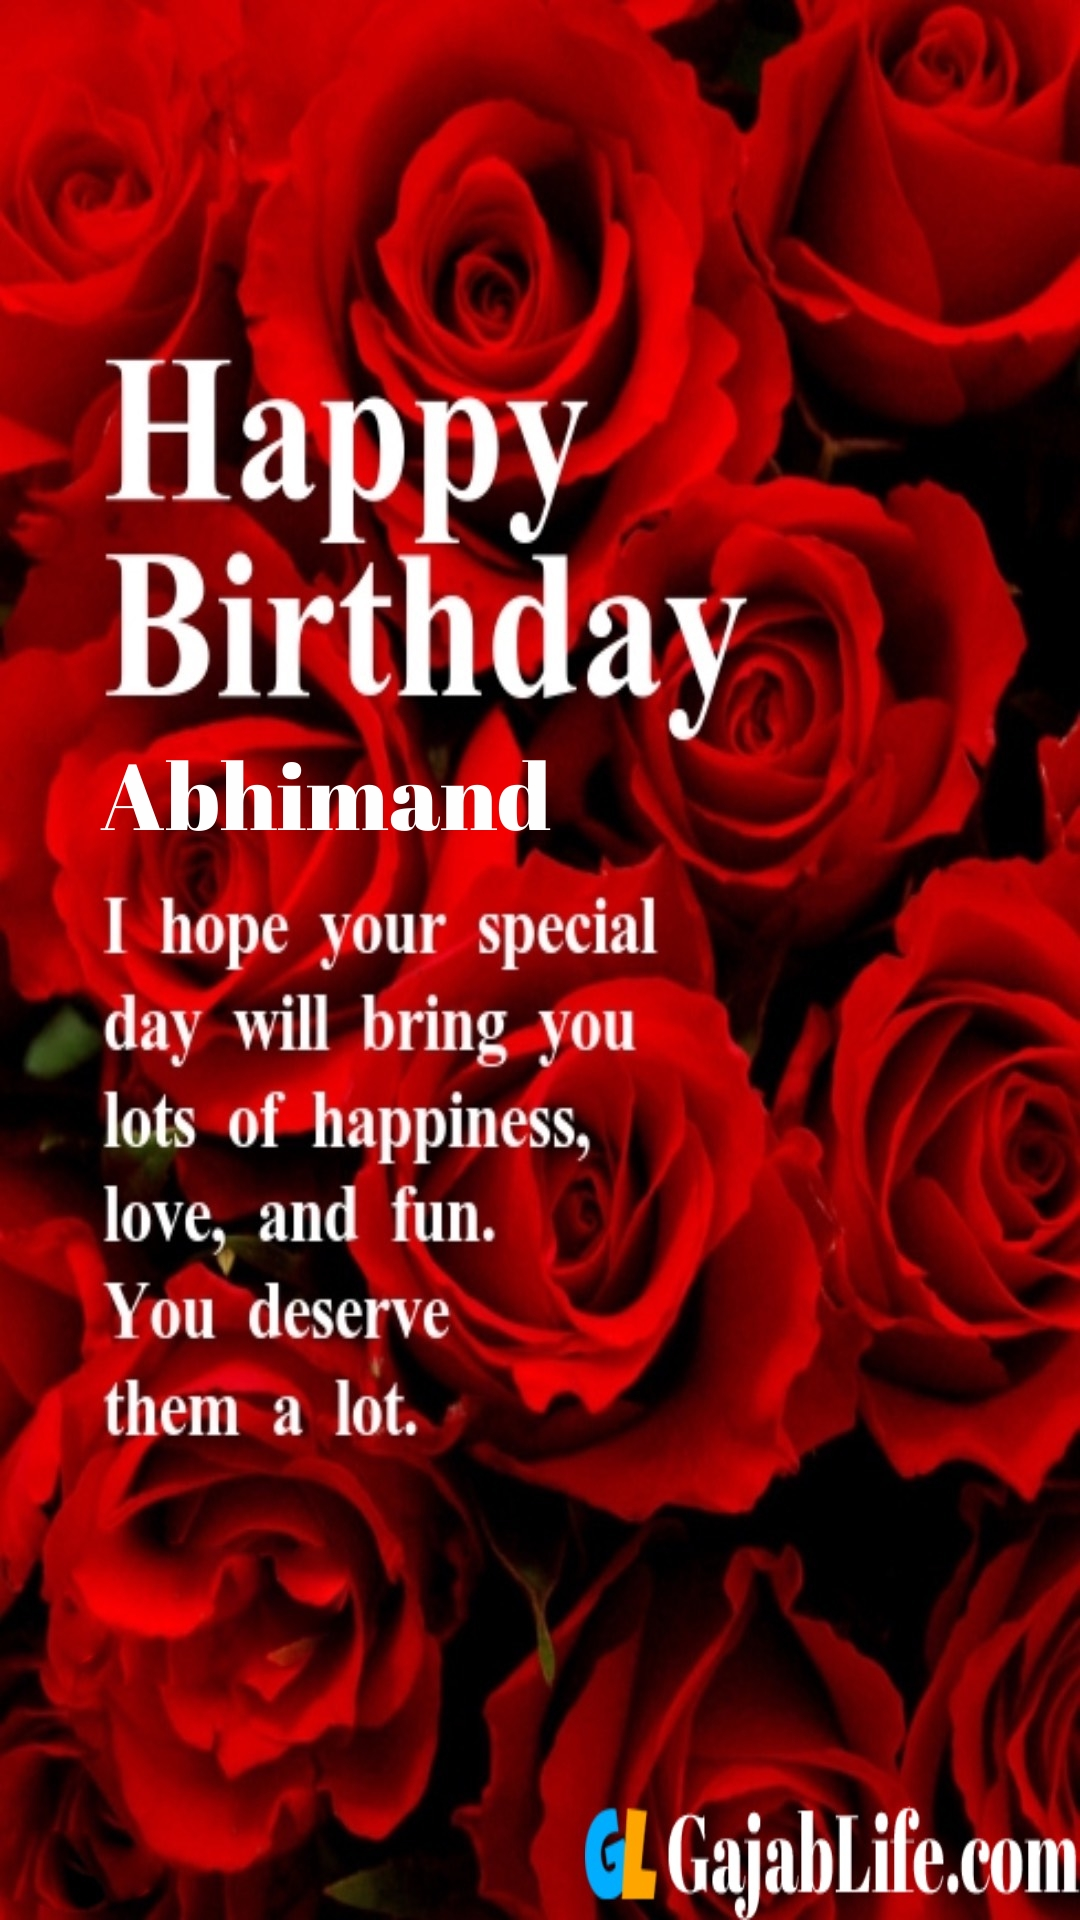 Abhimand birthday greeting card with rose & love